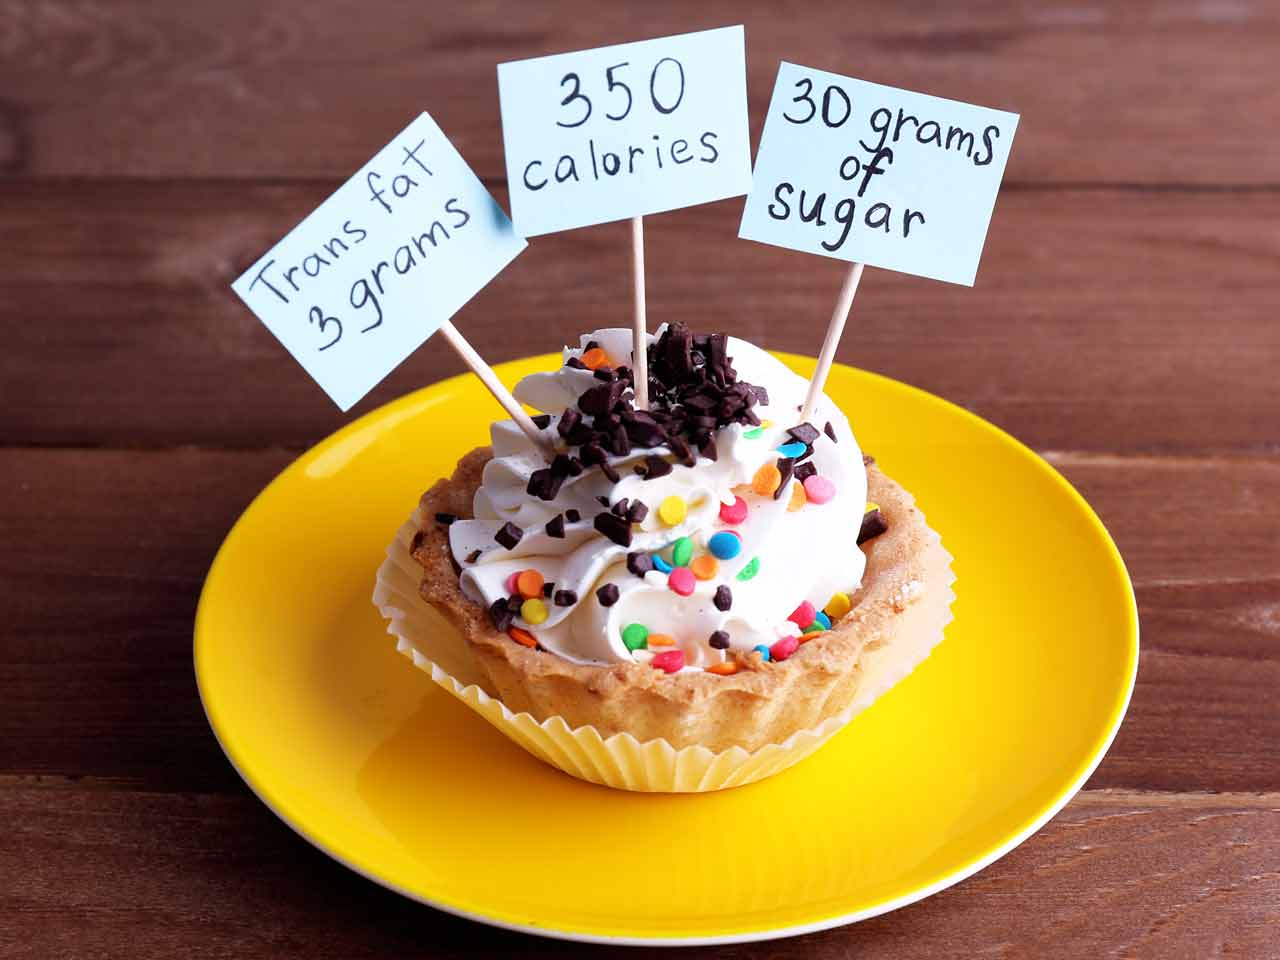 fat and calorie count of a frosted cupcake